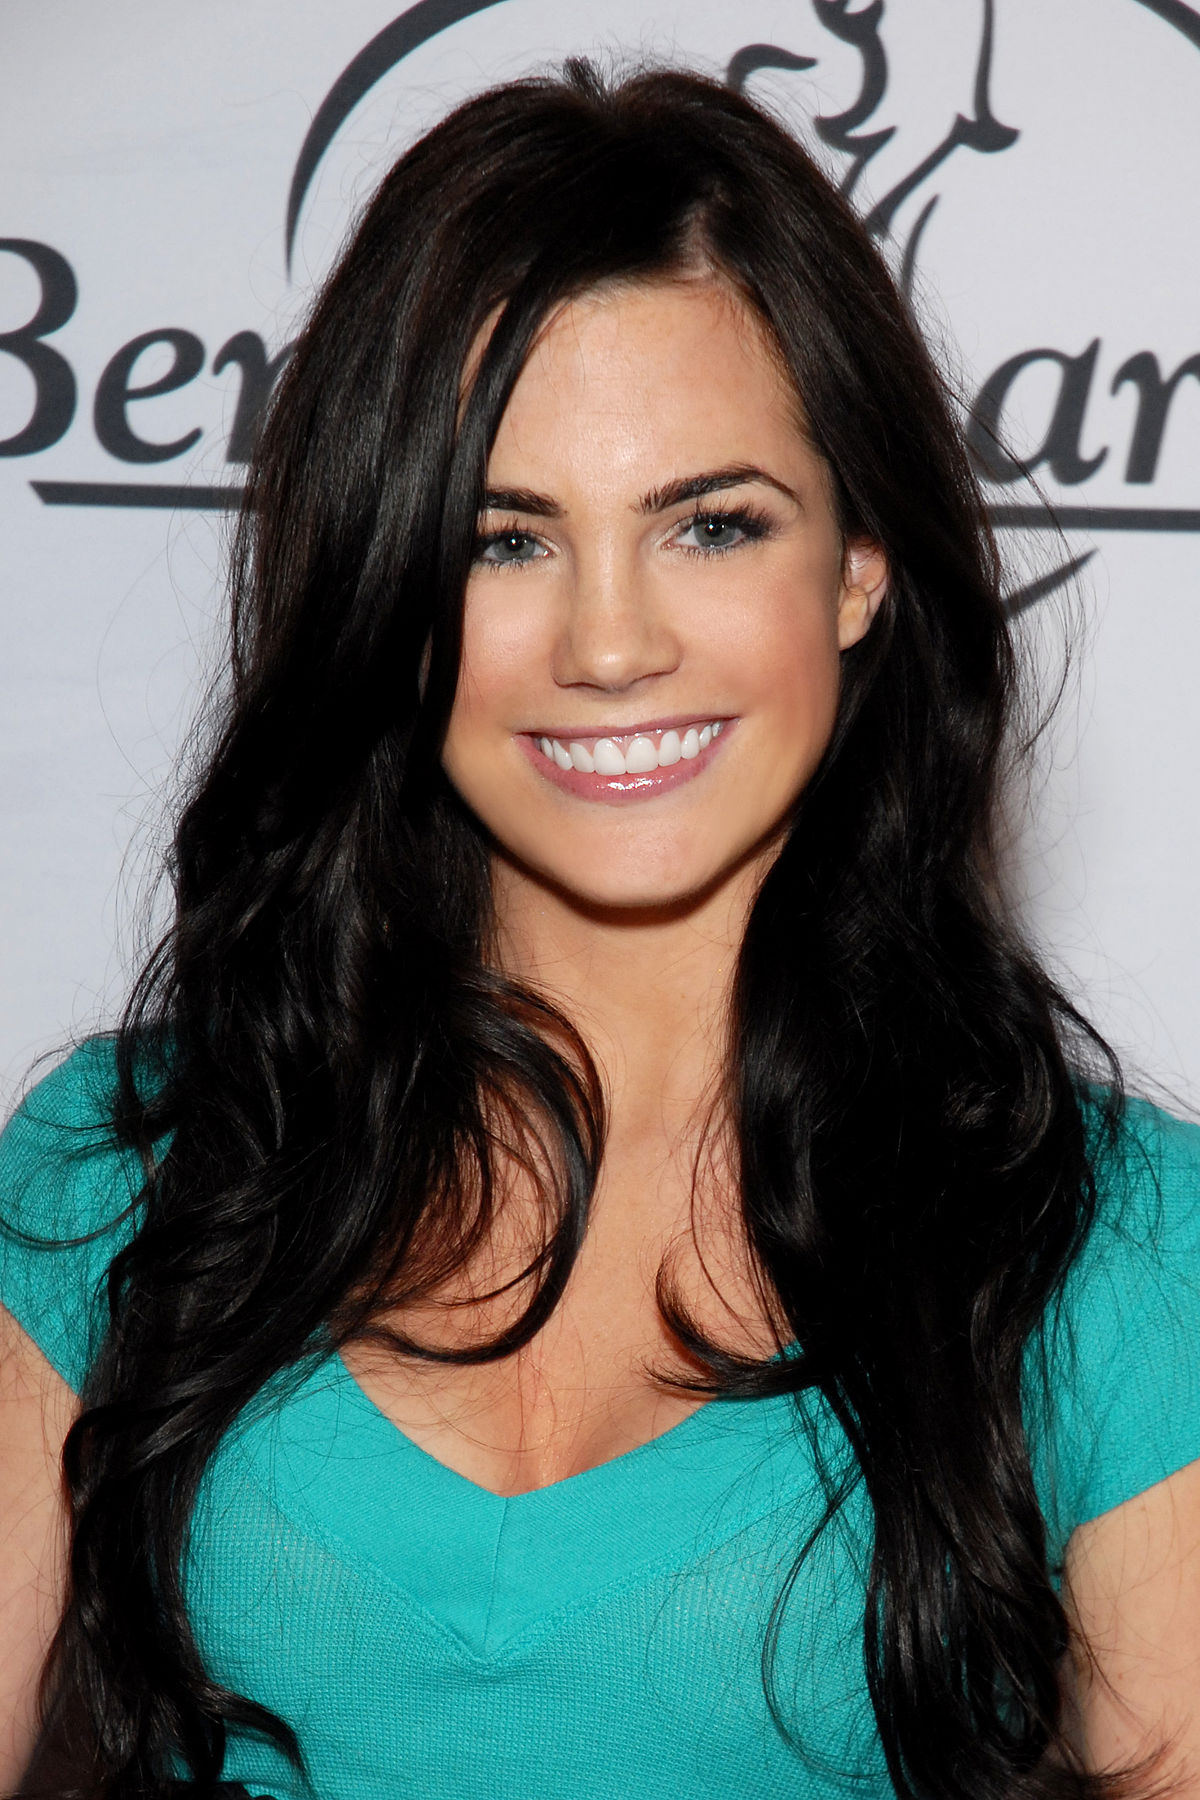 MBTI enneagram type of Jillian Murray